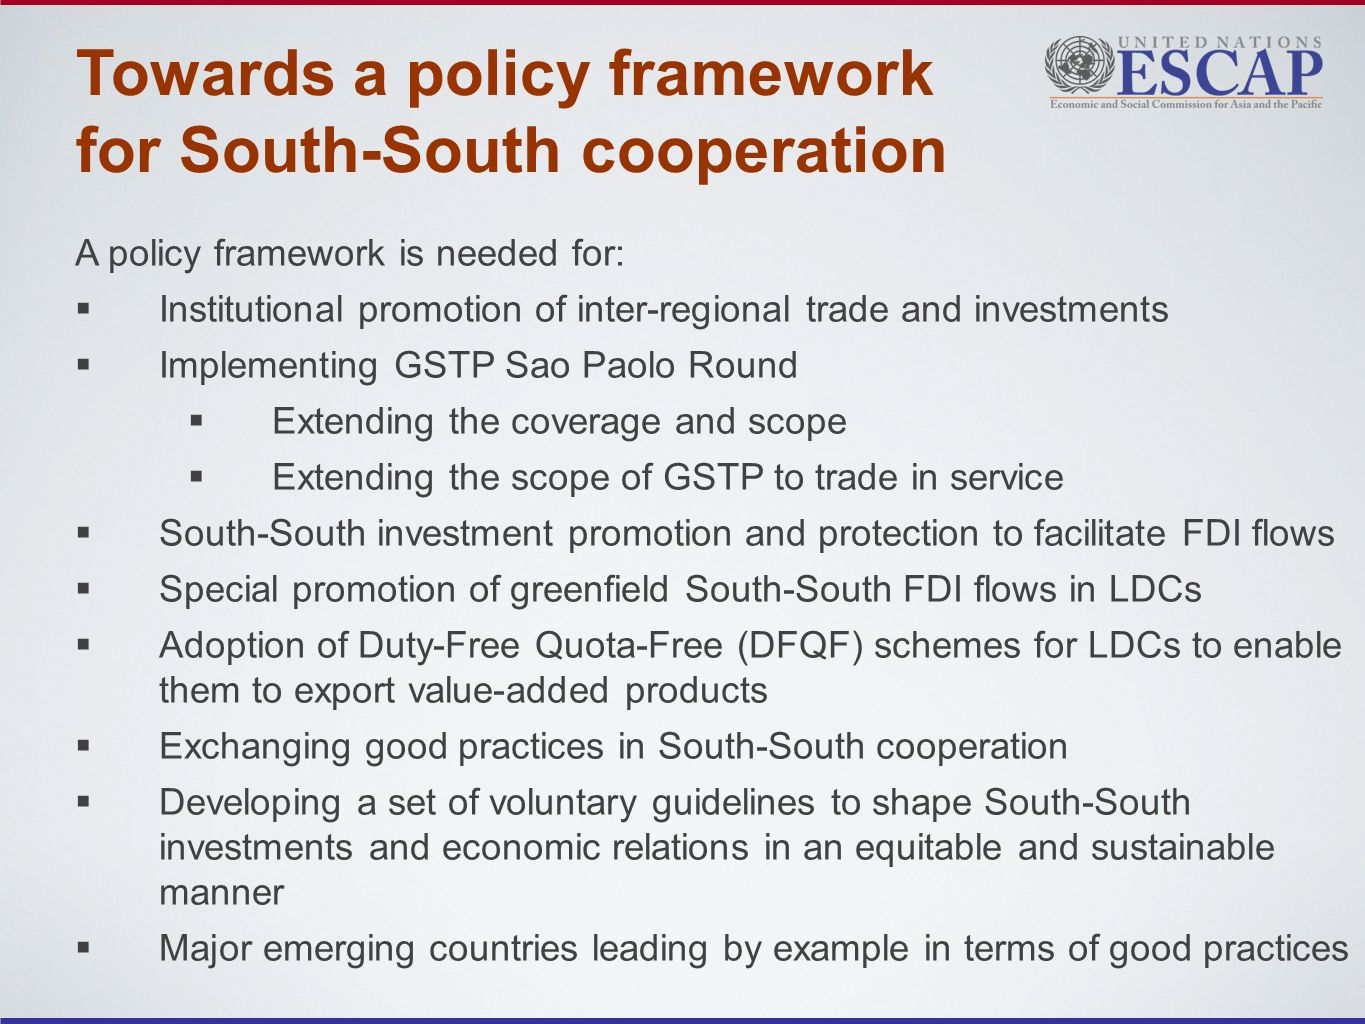 Towards a policy framework for South-South cooperation A policy framework is needed for: Institutional promotion of inter-regional trade and investments Implementing GSTP Sao Paolo Round Extending the coverage and scope Extending the scope of GSTP to trade in service South-South investment promotion and protection to facilitate FDI flows Special promotion of greenfield South-South FDI flows in LDCs Adoption of Duty-Free Quota-Free (DFQF) schemes for LDCs to enable them to export value-added products Exchanging good practices in South-South cooperation Developing a set of voluntary guidelines to shape South-South investments and economic relations in an equitable and sustainable manner Major emerging countries leading by example in terms of good practices